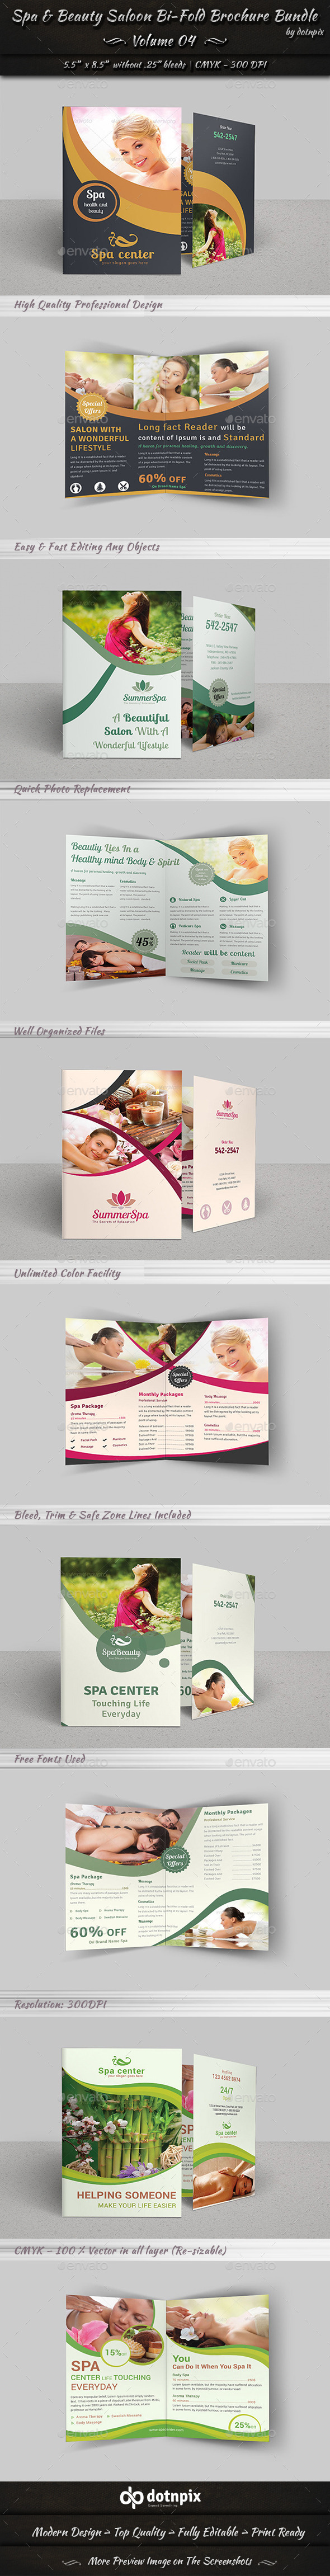 GraphicRiver Spa & Beauty Saloon Bi-Fold Brochure Bundle v4 9052741